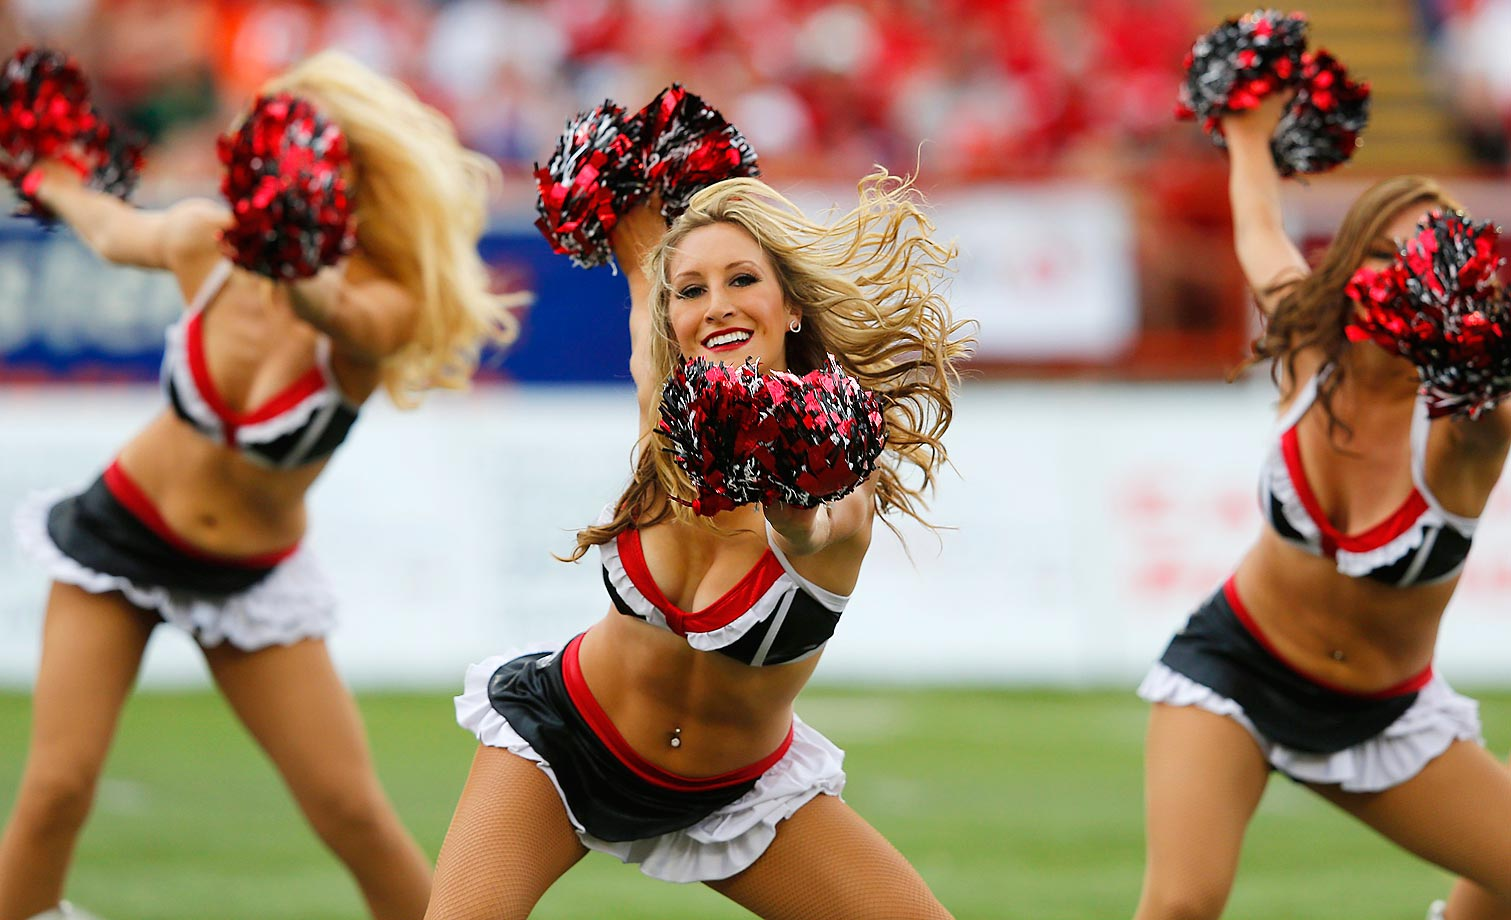 With the 2015 Canadian Football League in full stride in early August, here are some photos of the league's cheerleaders, both past and present.